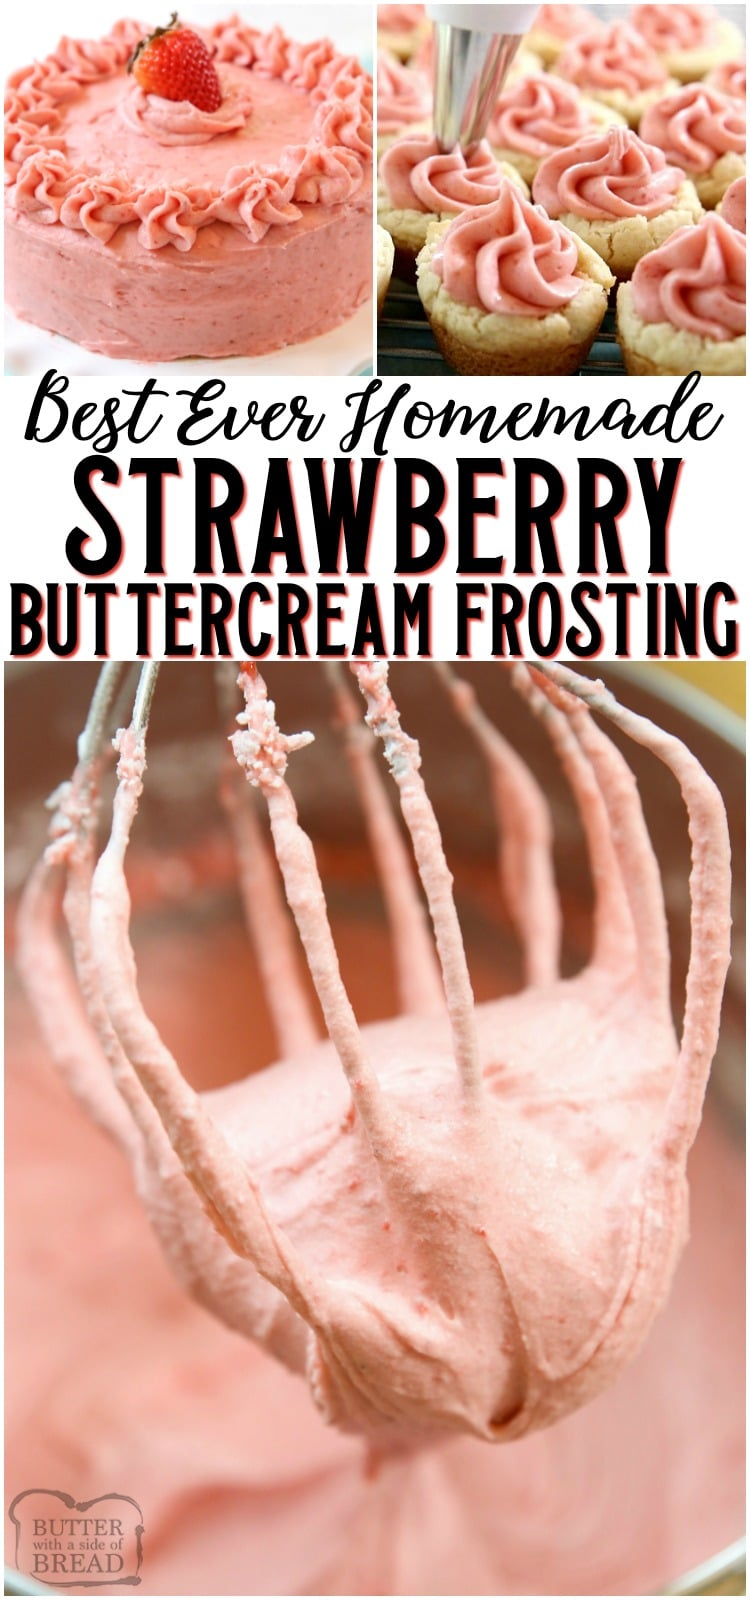 Strawberry Buttercream Frosting made with fresh strawberries with a perfect, bright strawberry flavor. This is the BEST strawberry frosting recipe ever. No coloring & goes wonderfully on cookies, cakes and cupcakes.